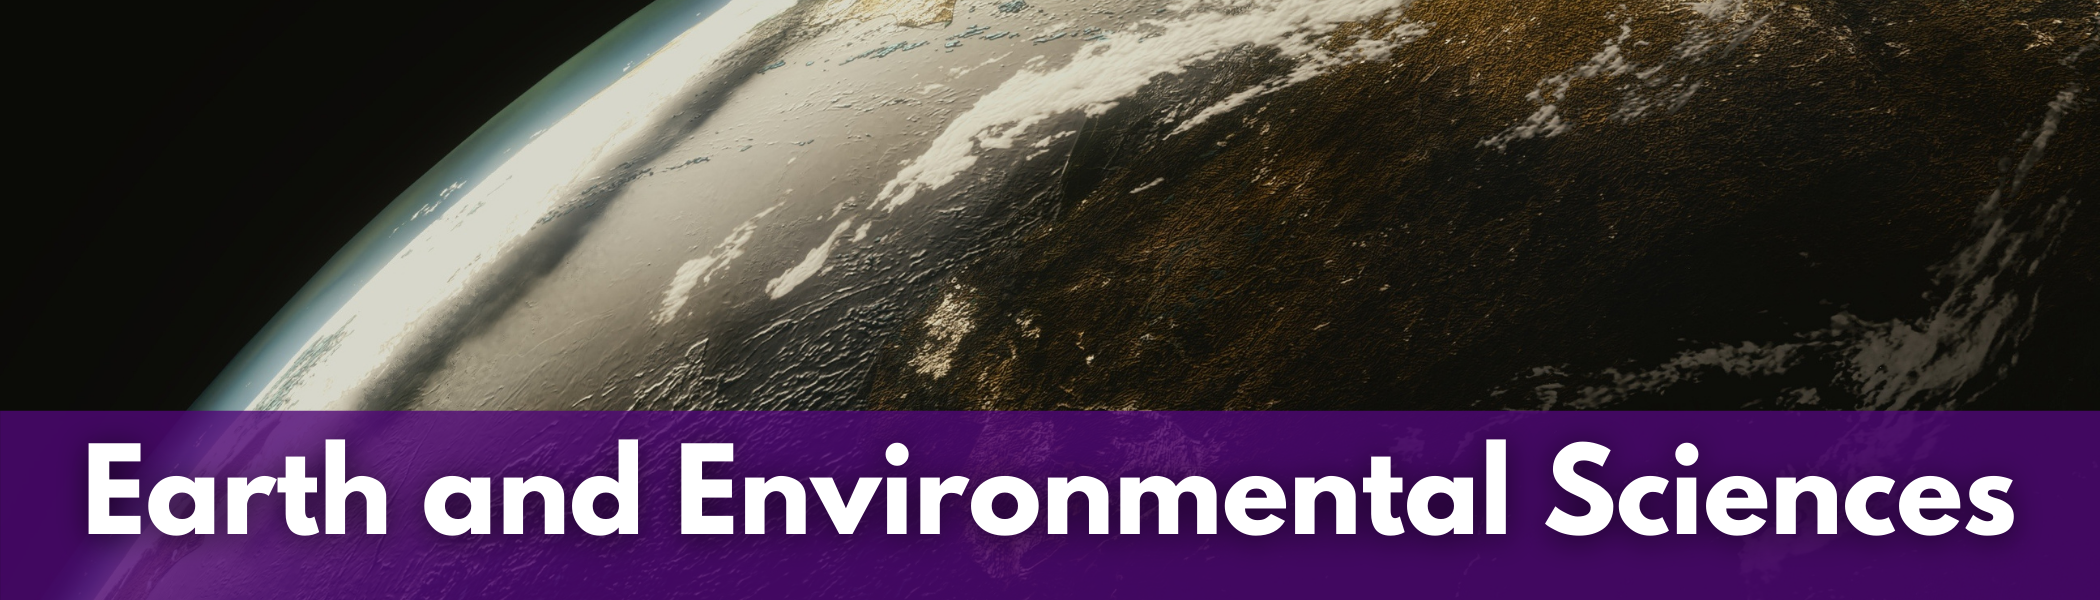 Earth and Environmental Sciences